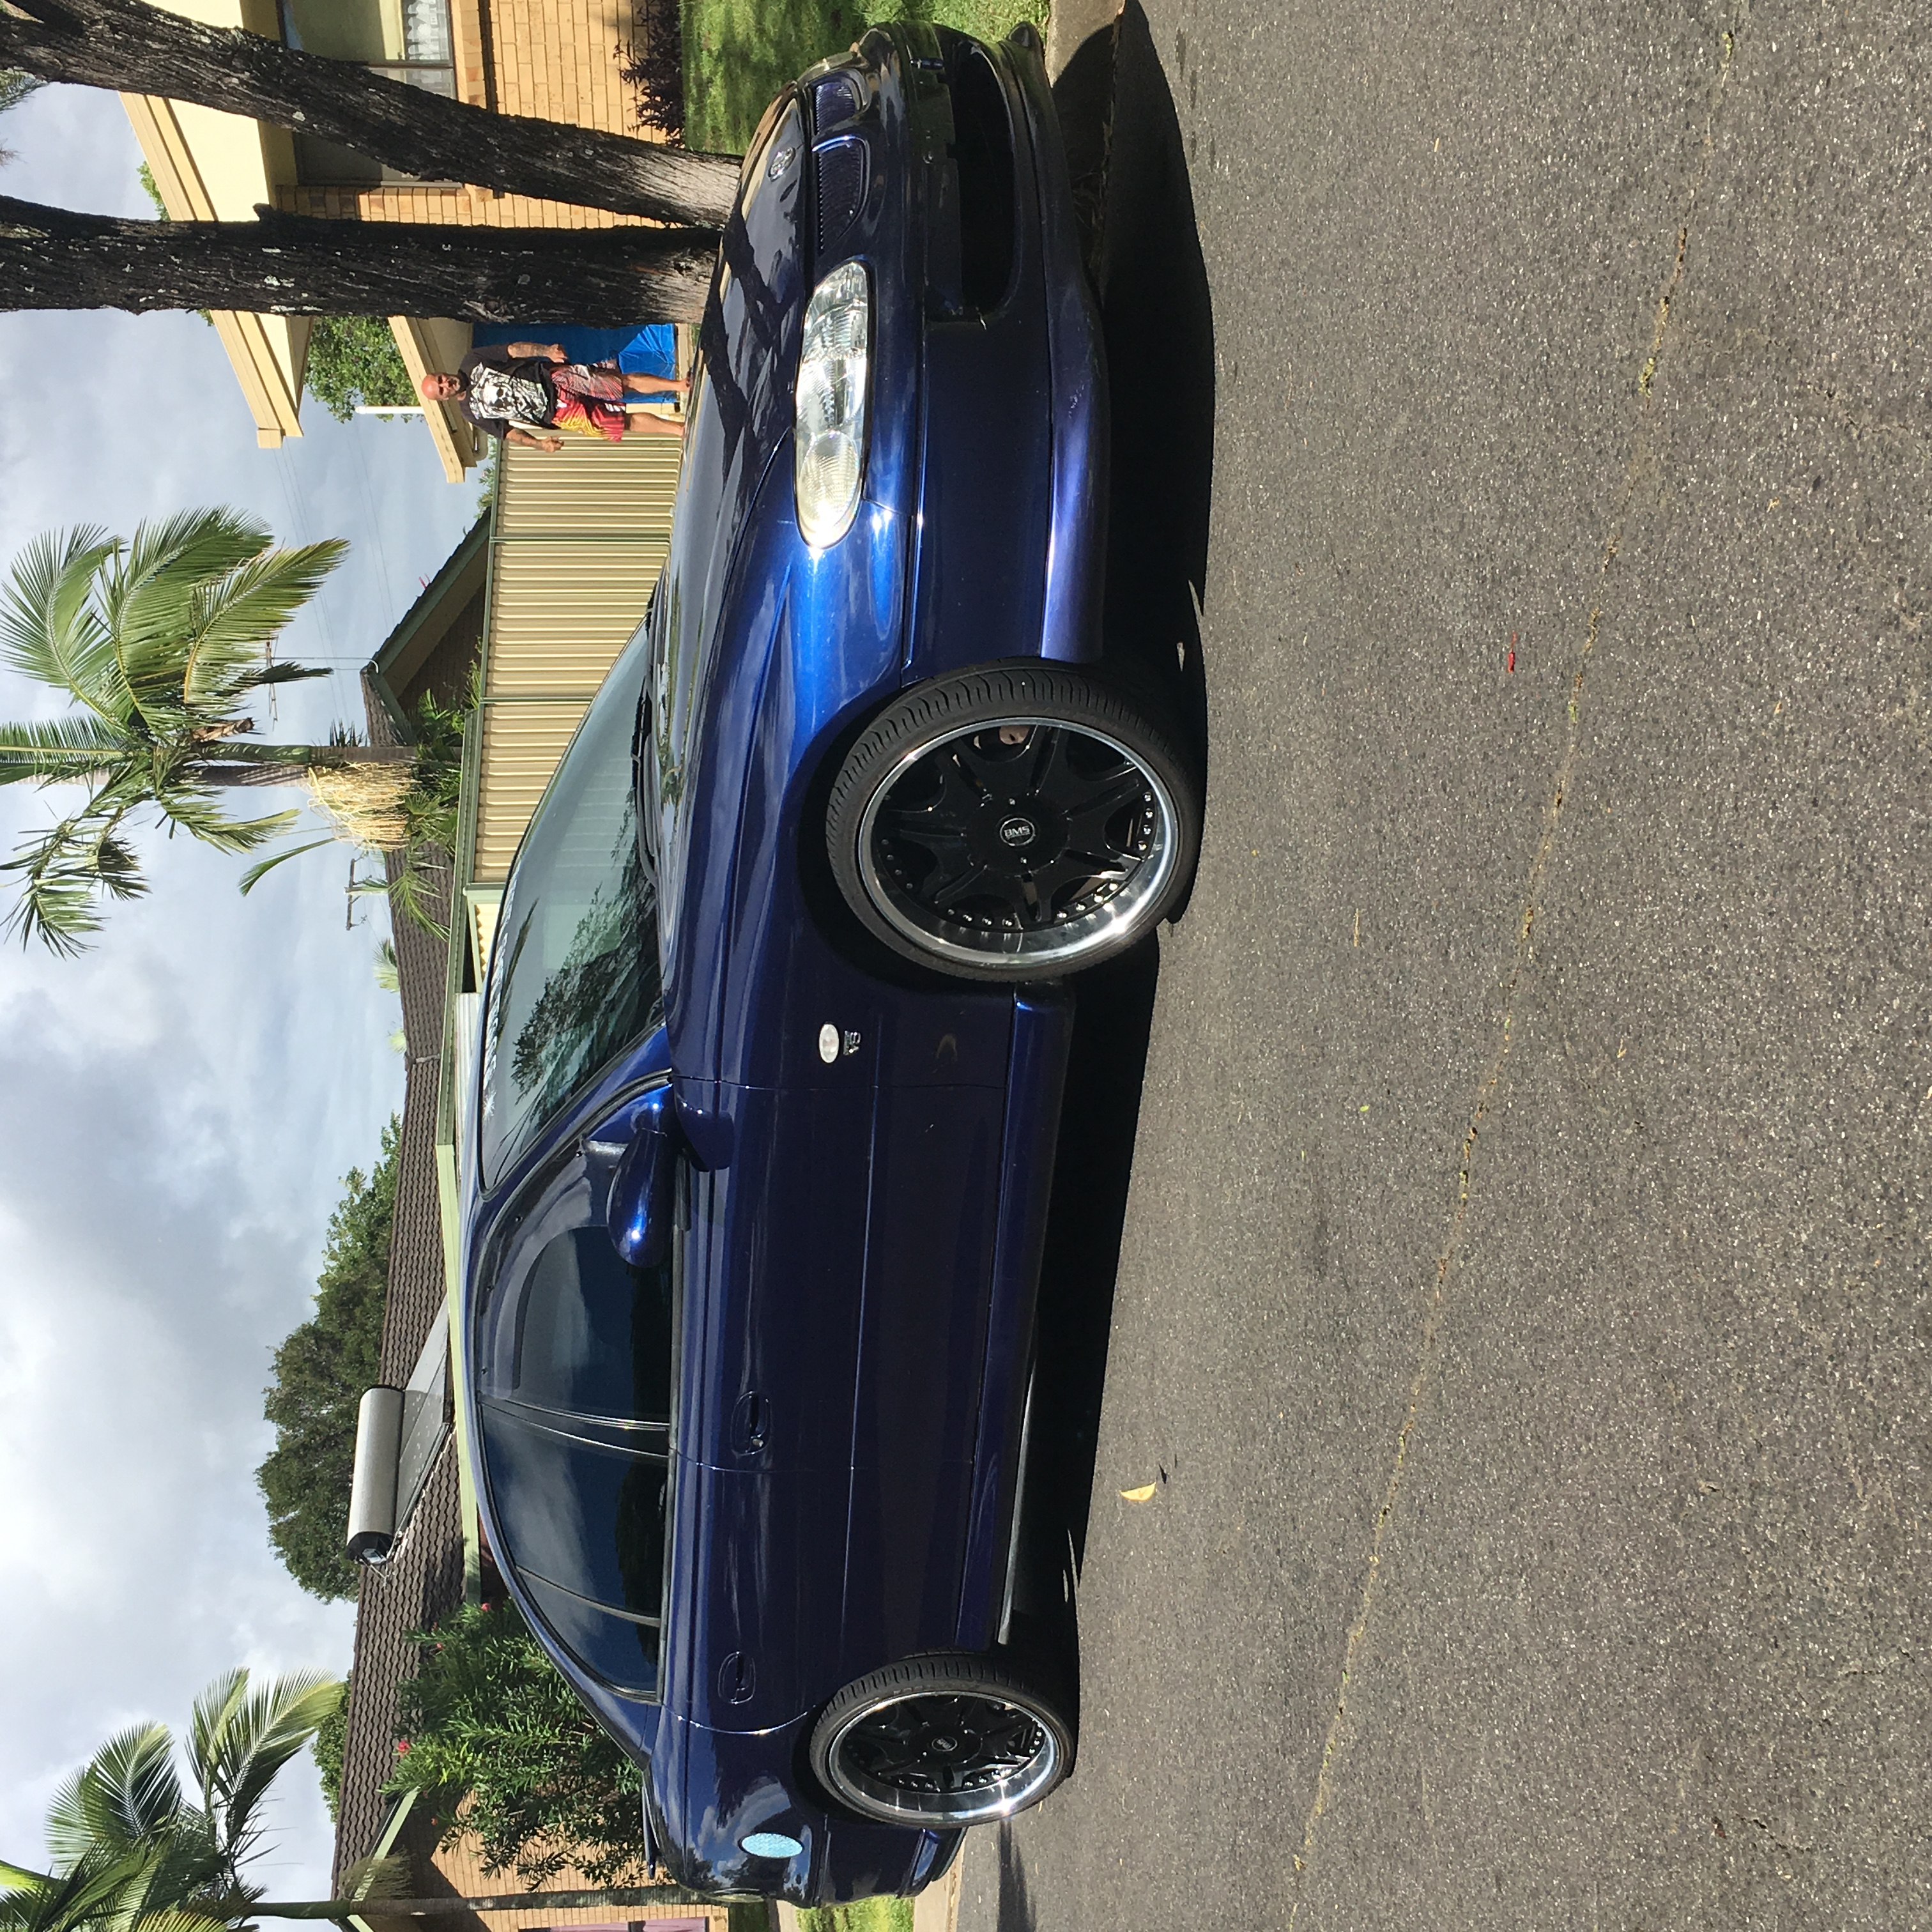 2002 Holden Commodore Car Valuation: Car Sales QLD: Brisbane North #2922489